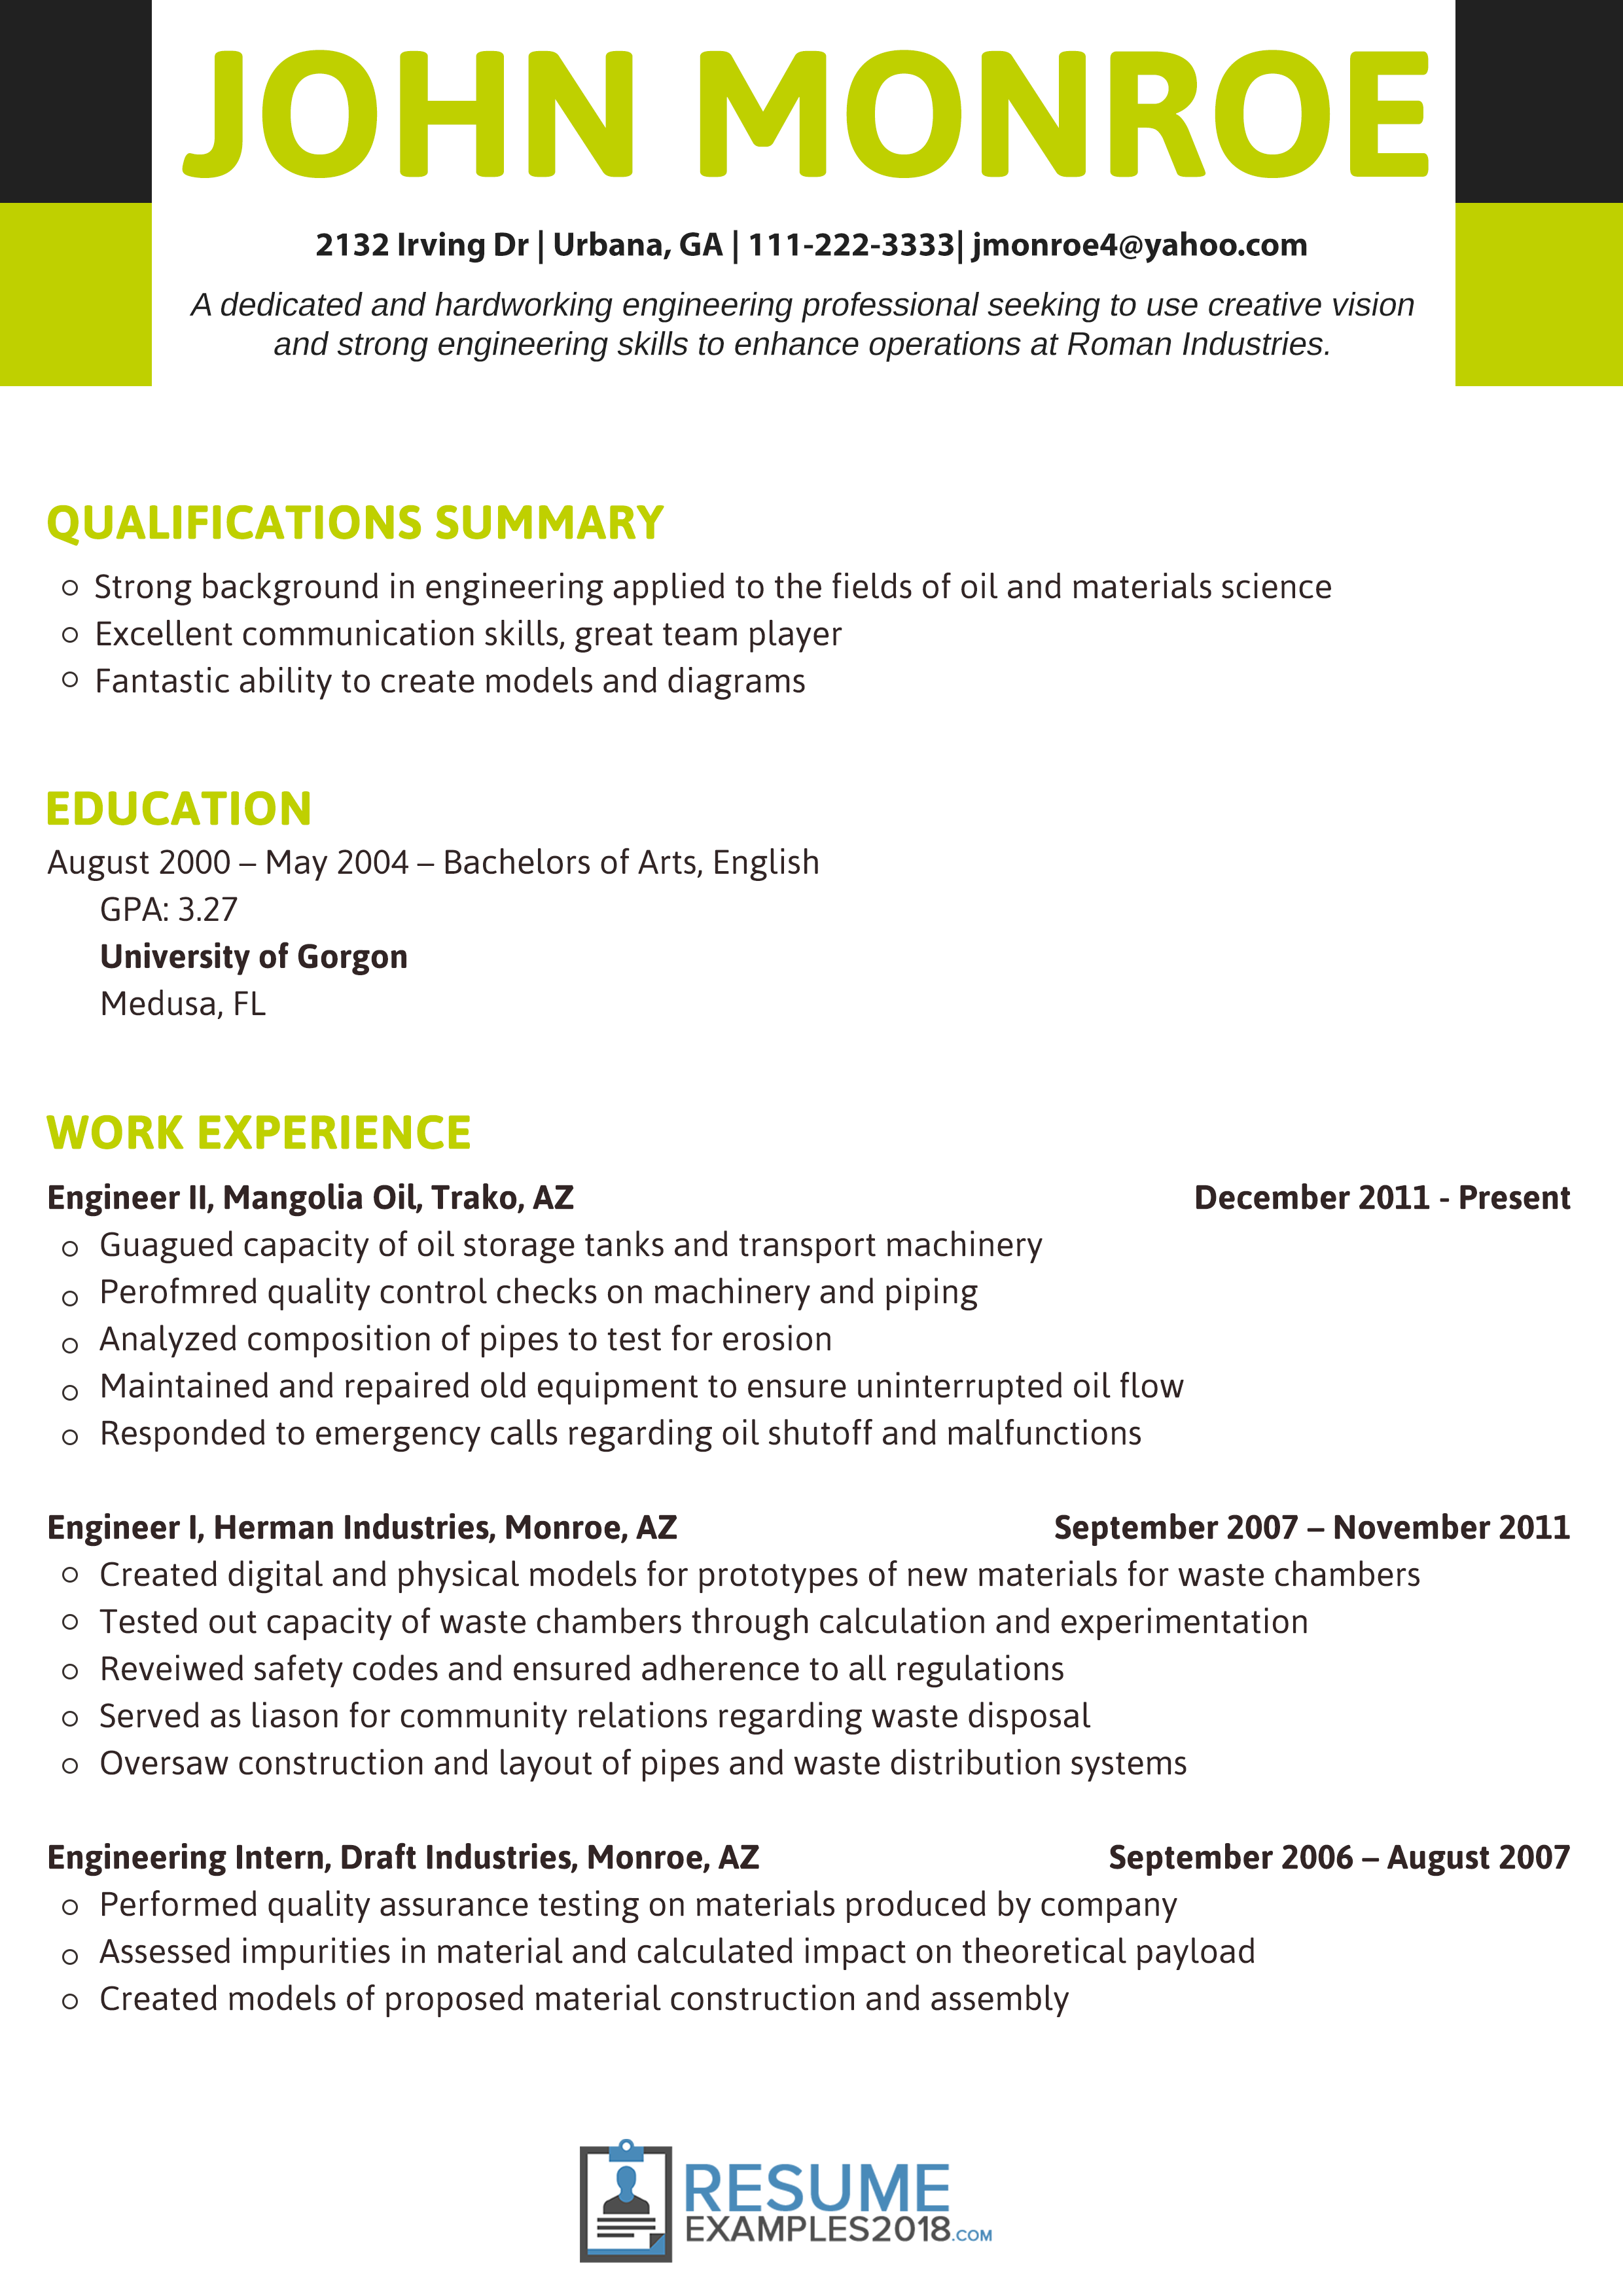 small resolution of resume examples 2018 engineering engineering examples resume resumeexamples